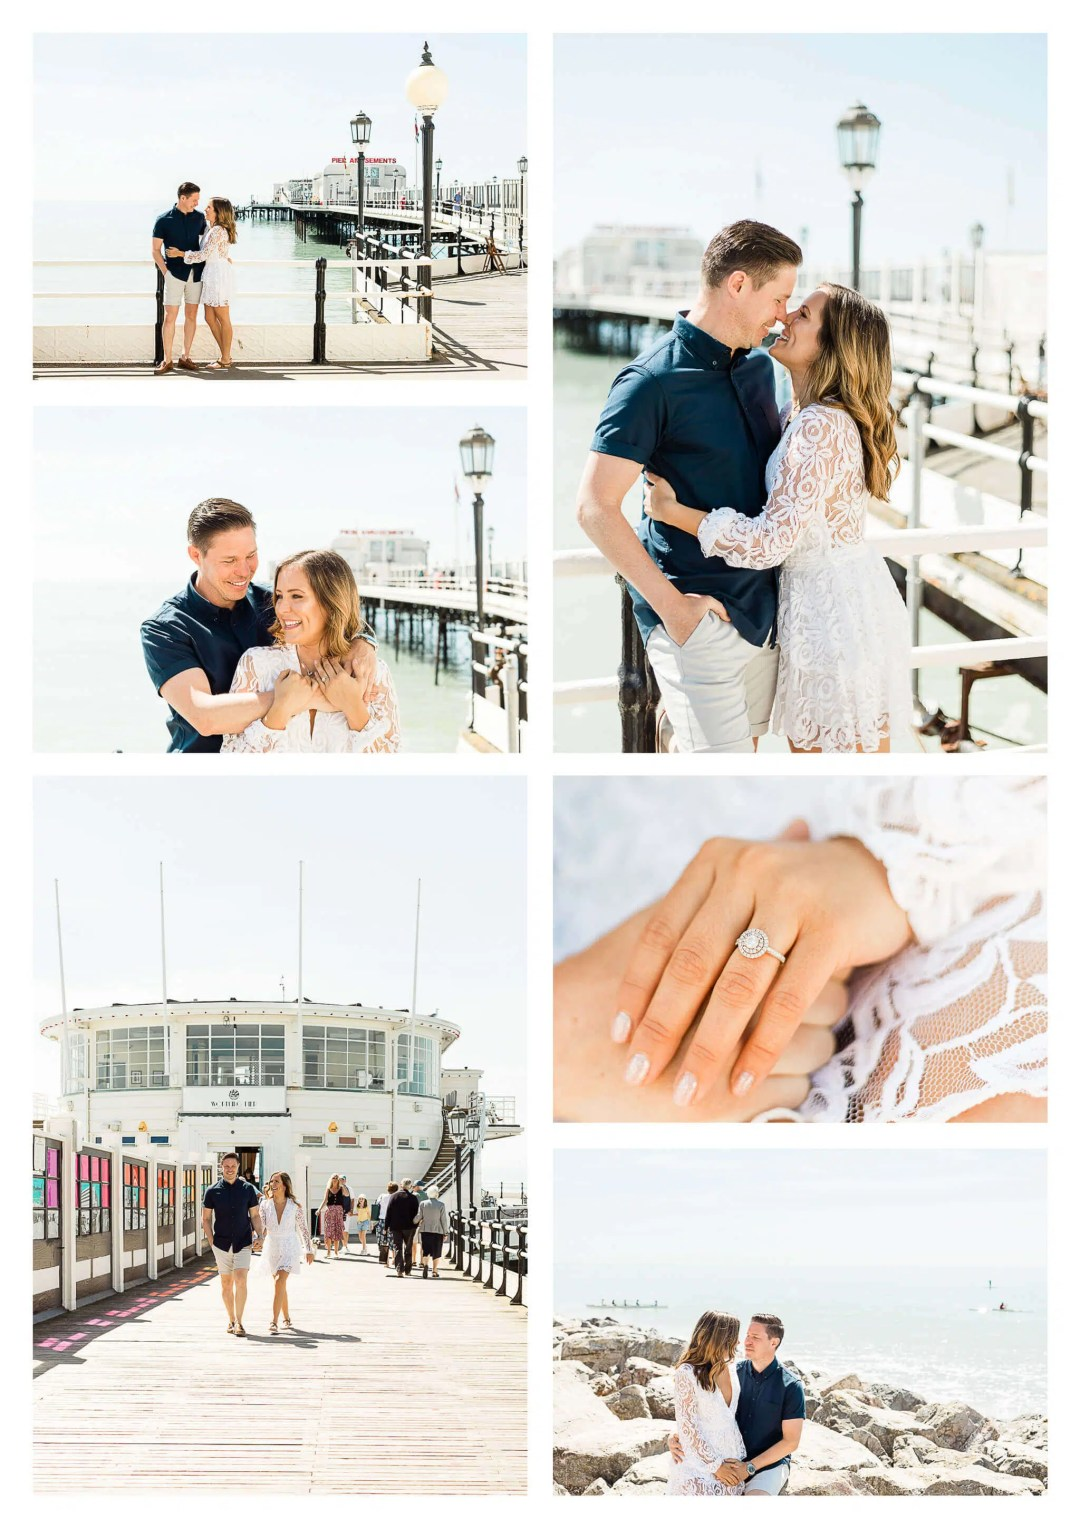 Worthing Pier Engagement Photography | Worthing Wedding Photographer